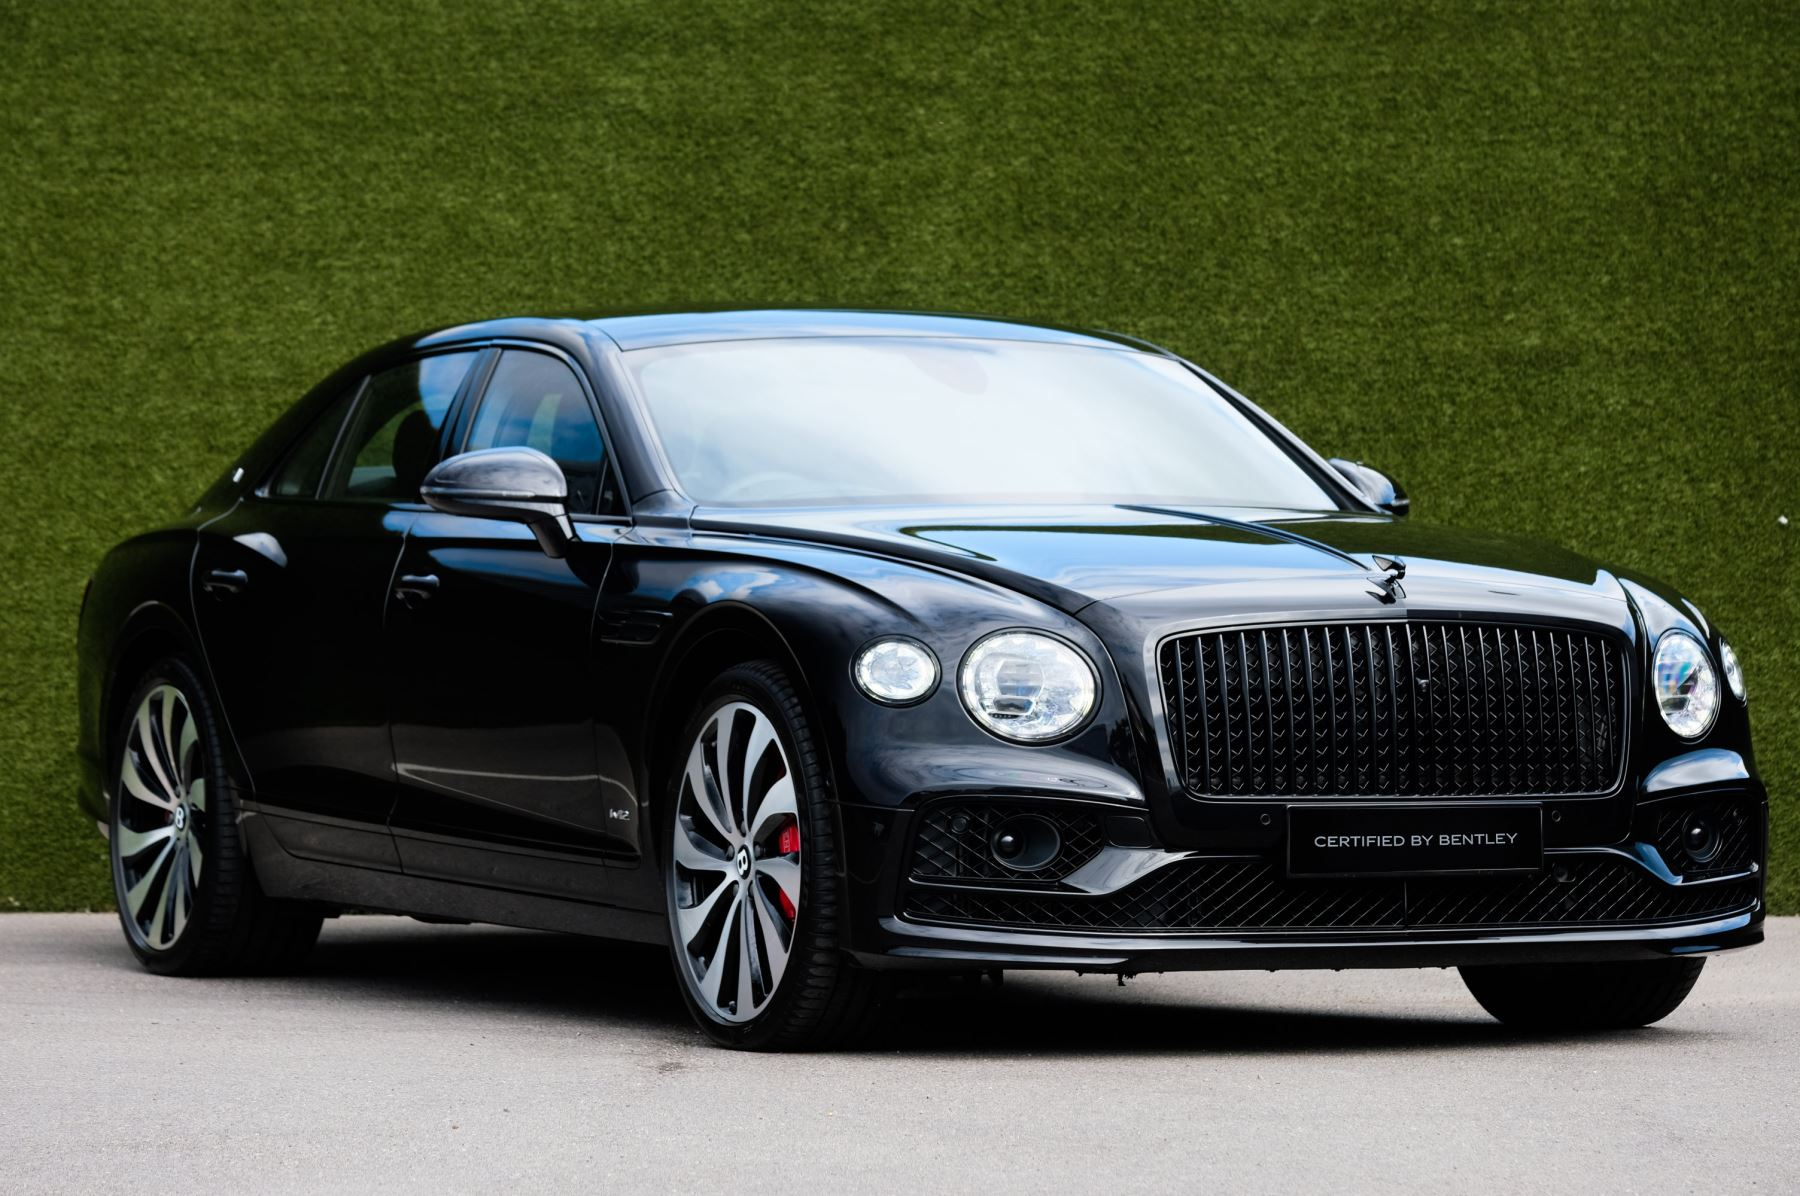 Bentley Flying Spur 6.0 W12 - First Edition - Mulliner Driving Specification Automatic 4 door Saloon